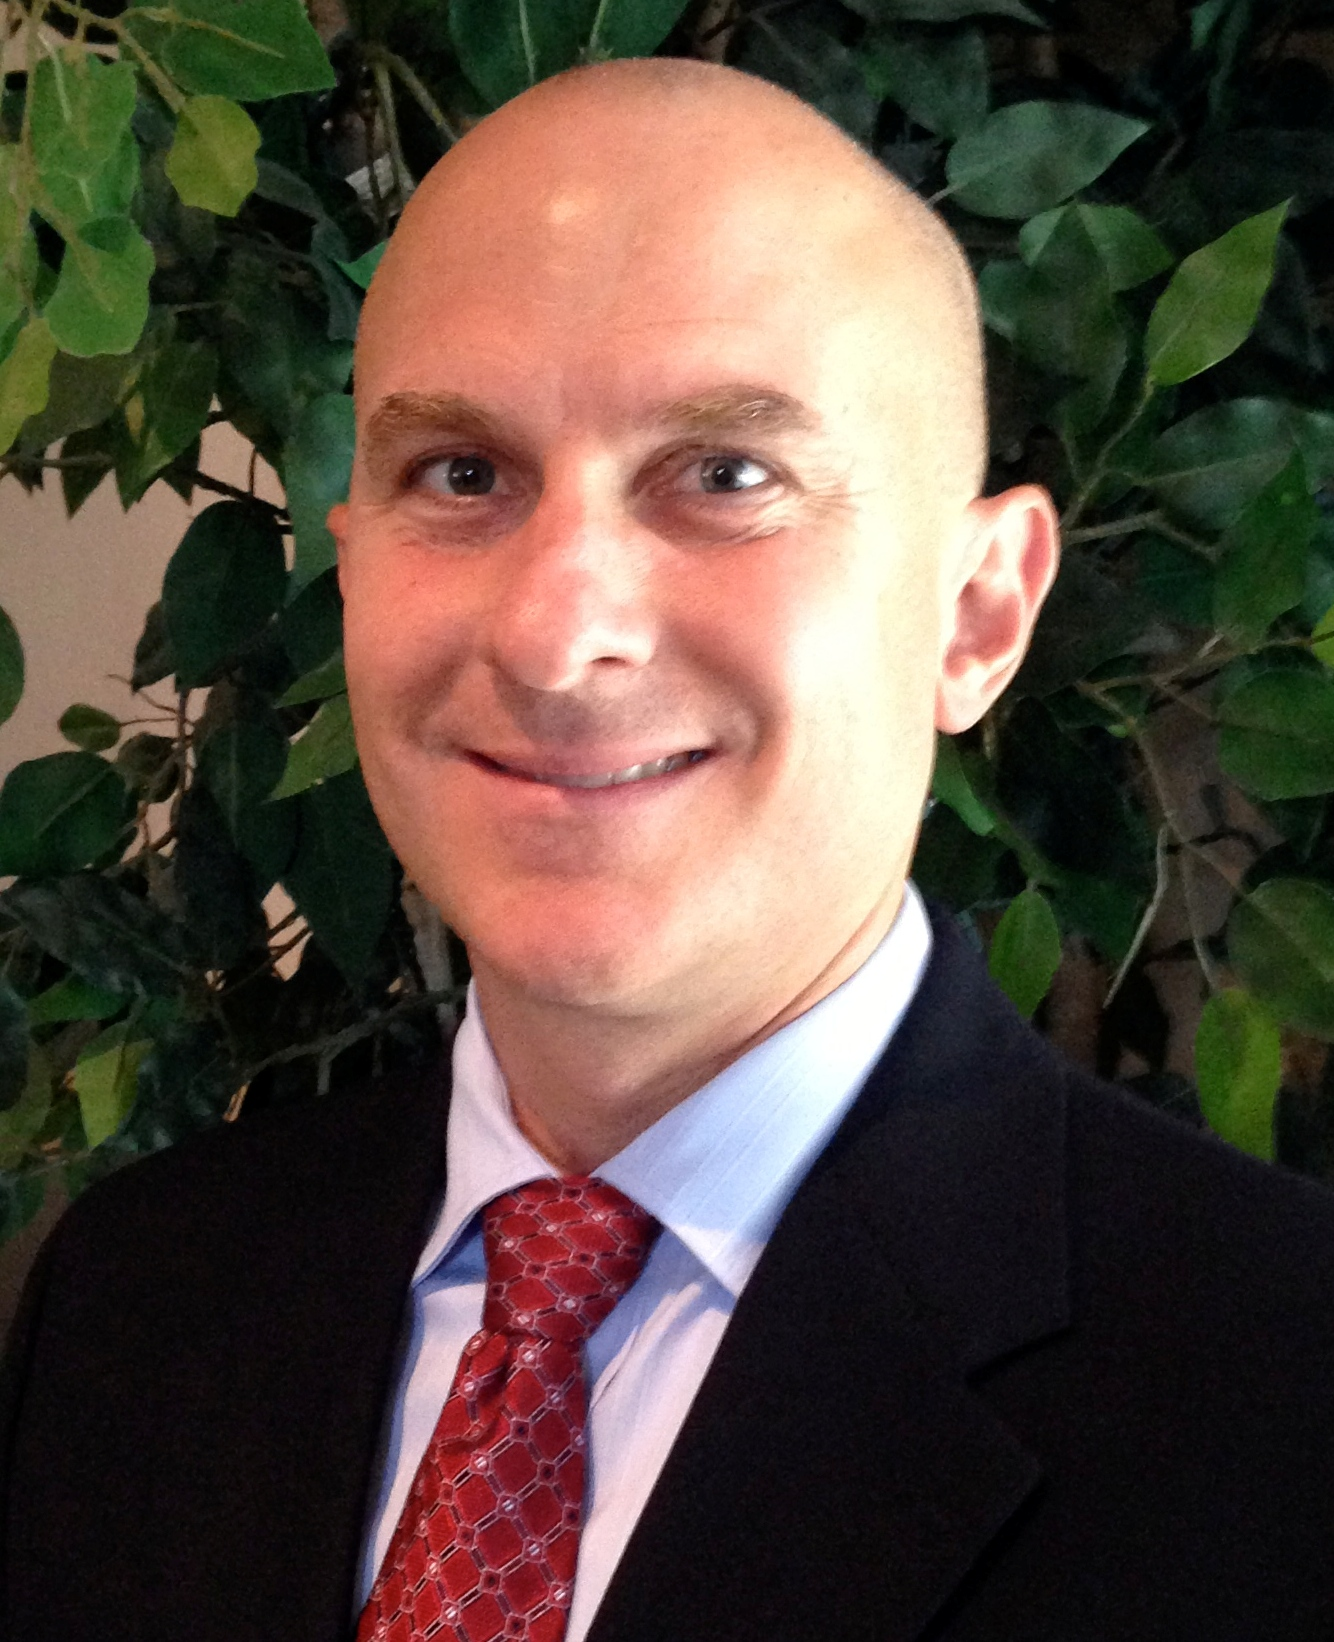 Tony Bedikian, Citizens Bank